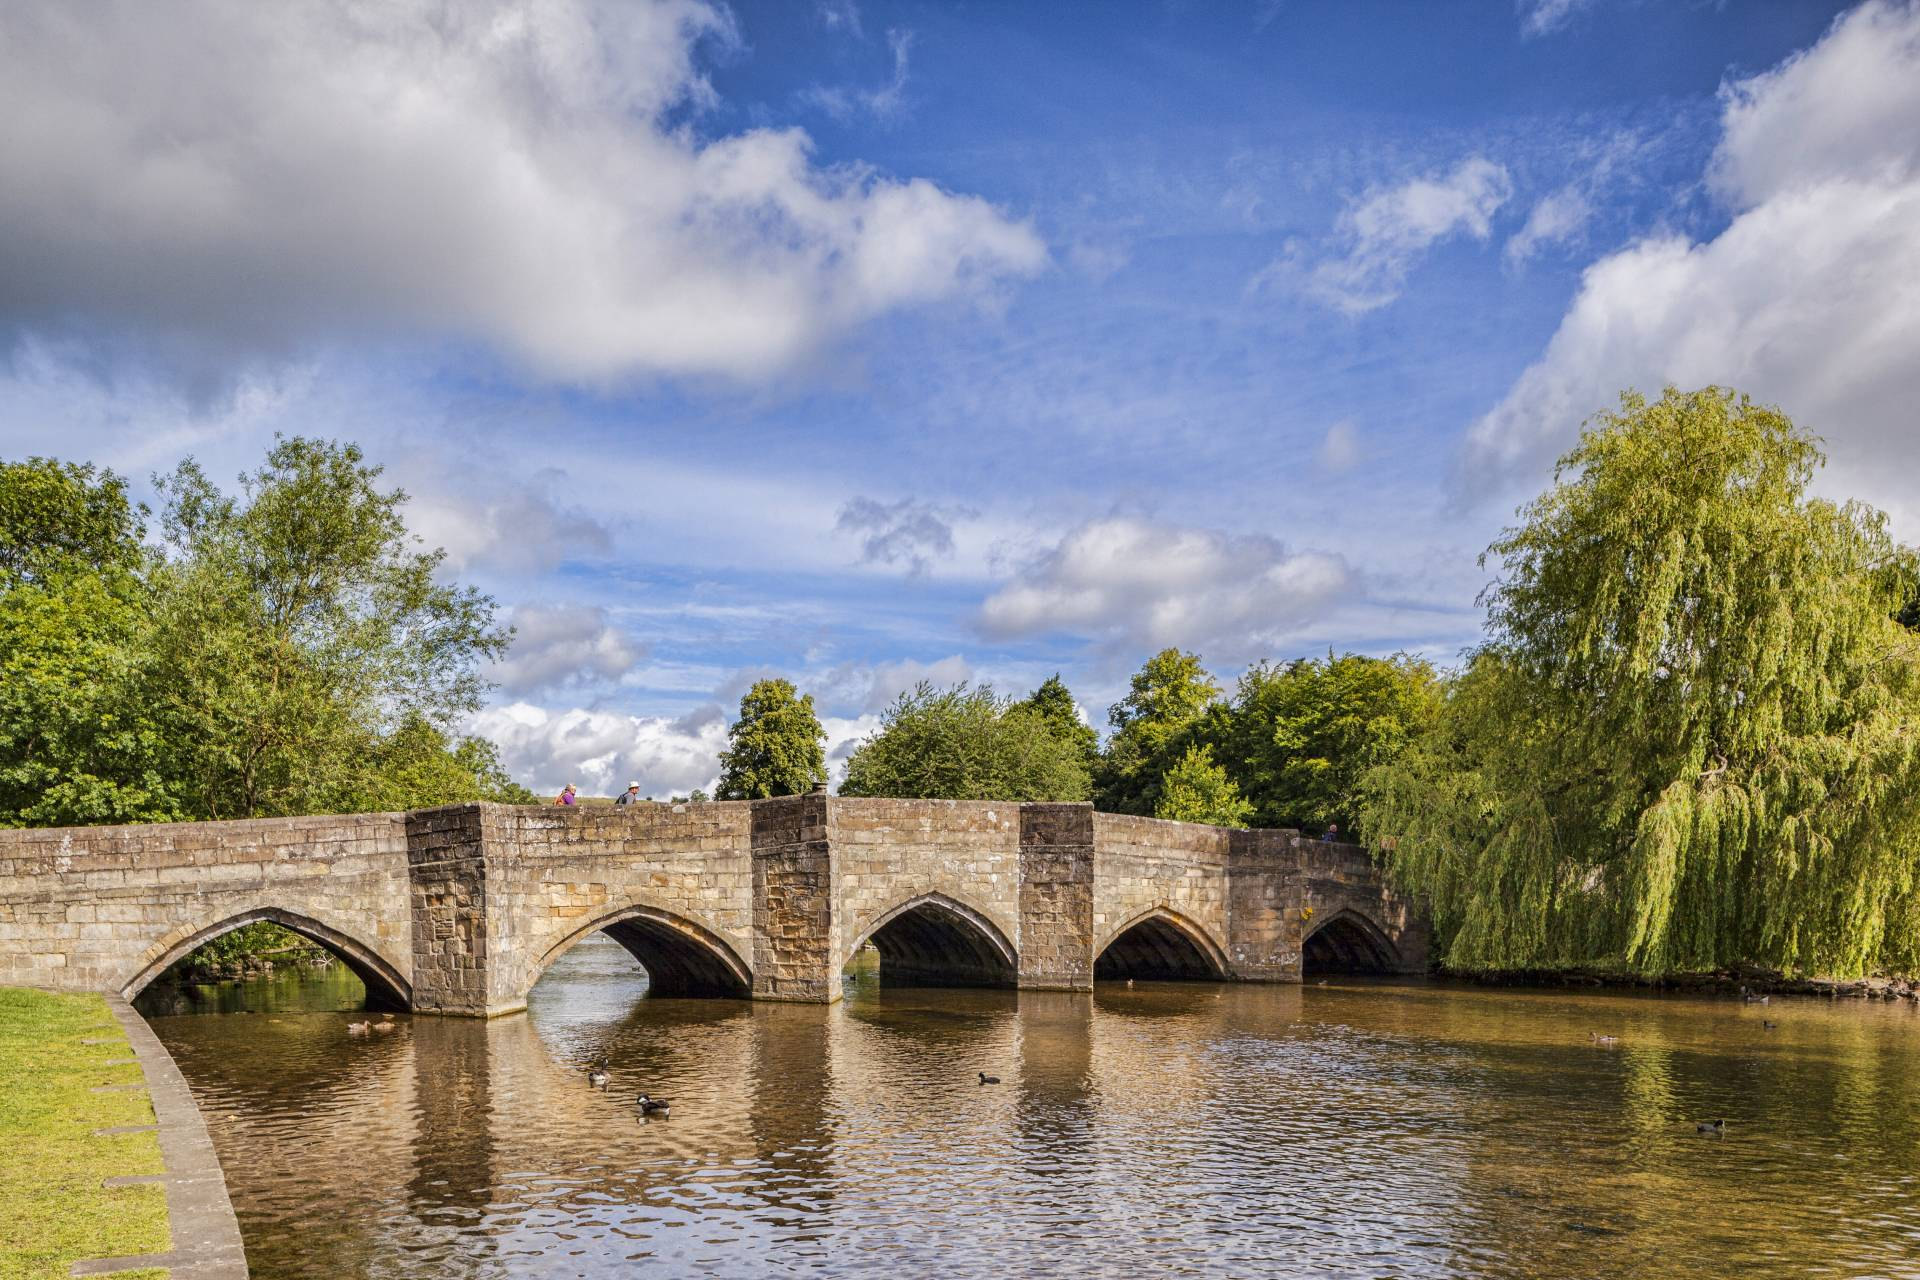 Bakewell bridge over the River Wye in the Peak District